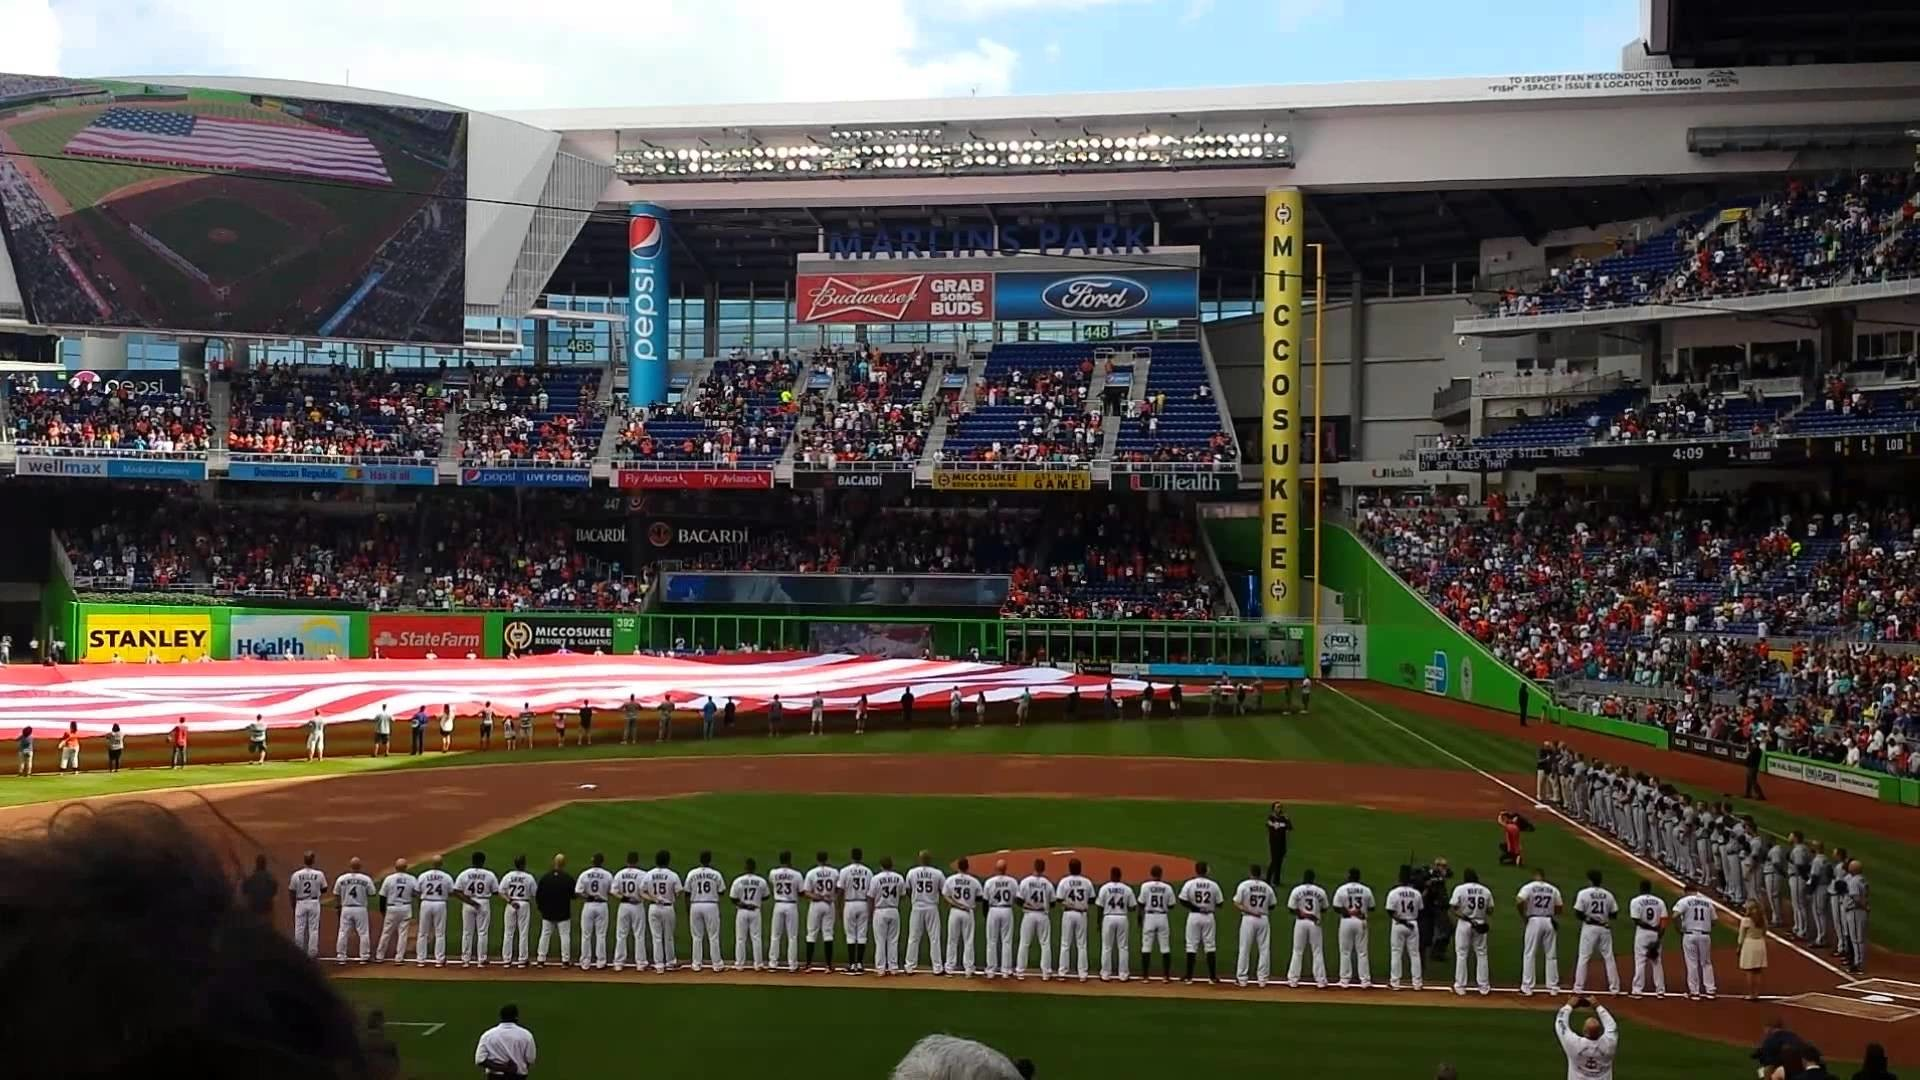 Miami marlins opening day 2015